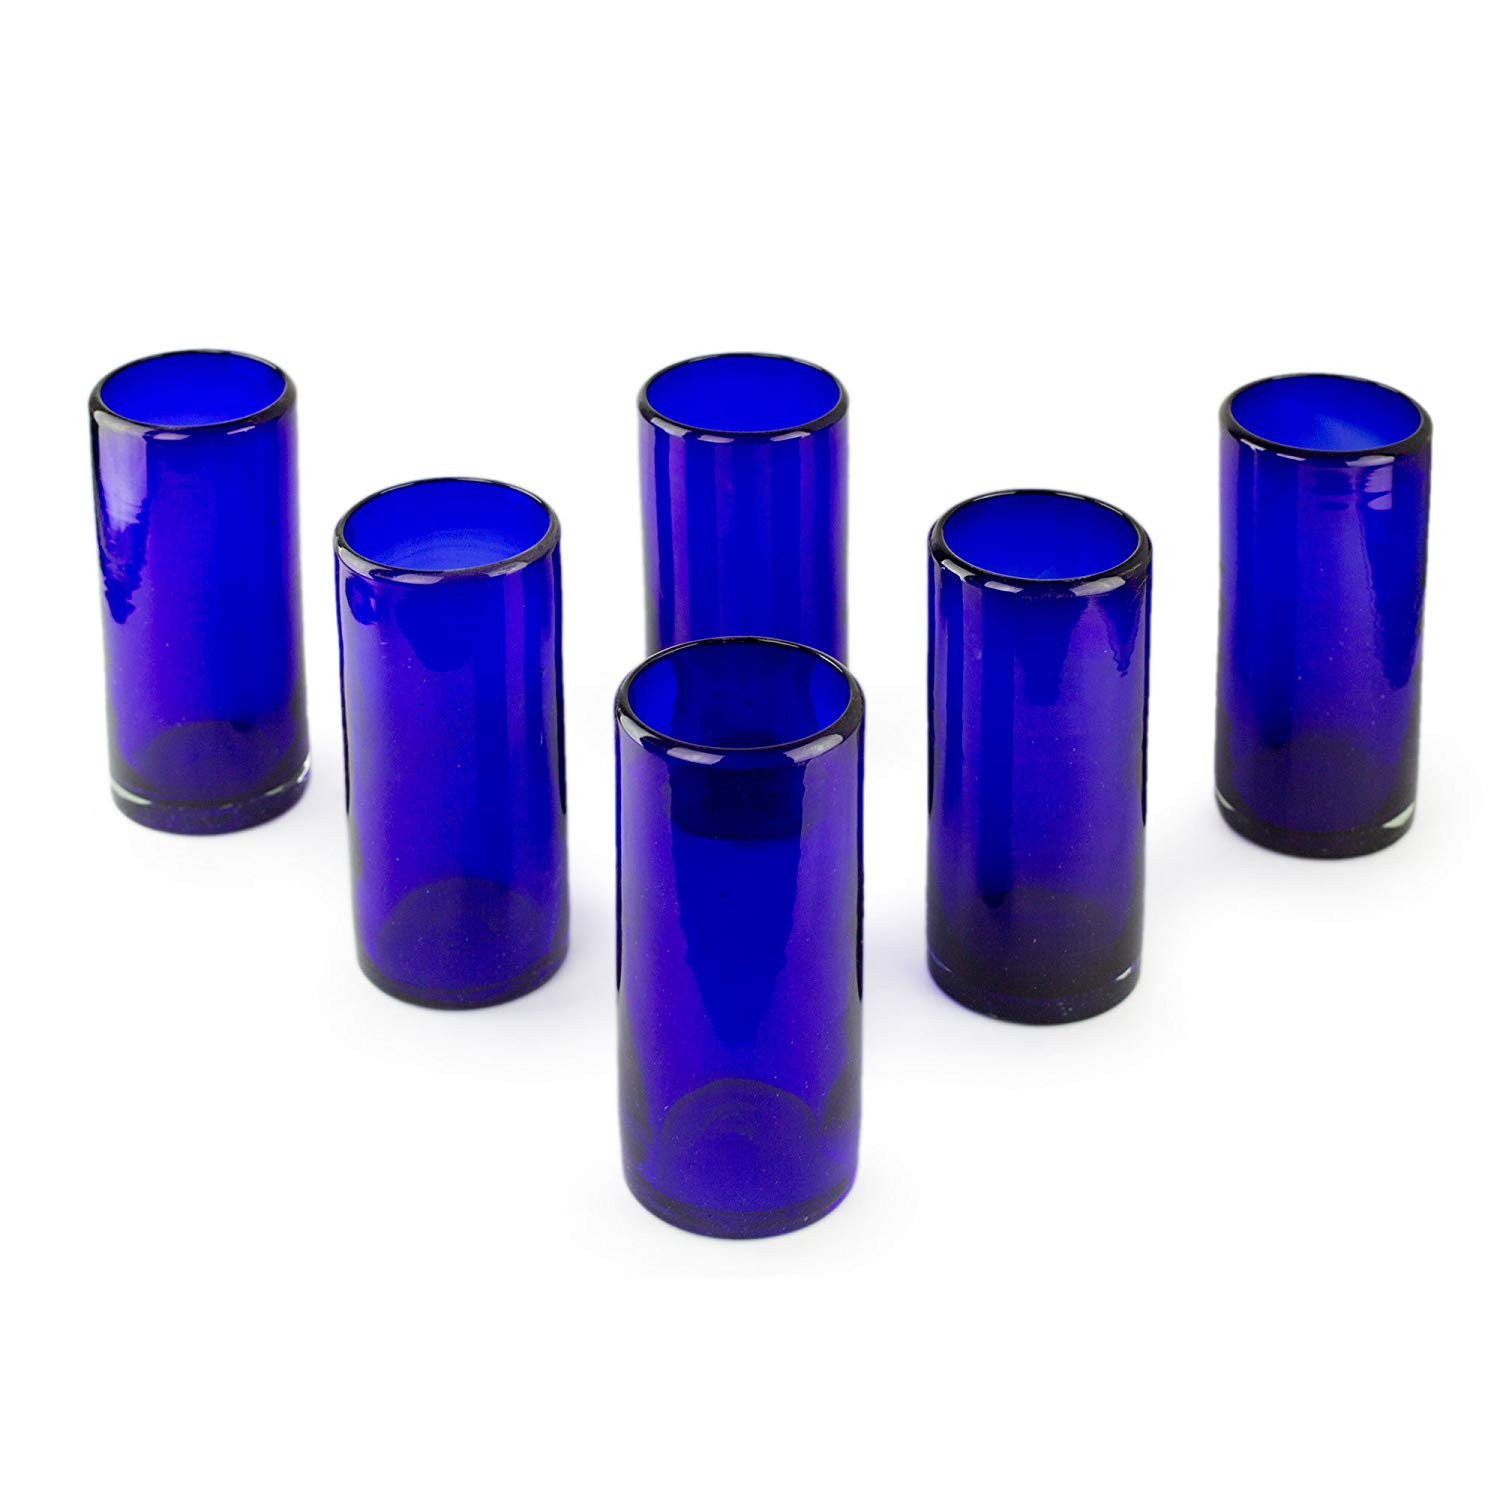 recycled spanish glass vases of amazon com novica artisan crafted dark blue recycled glass hand inside amazon com novica artisan crafted dark blue recycled glass hand blown cocktail glasses 13 oz pure cobalt set of 6 highball glasses